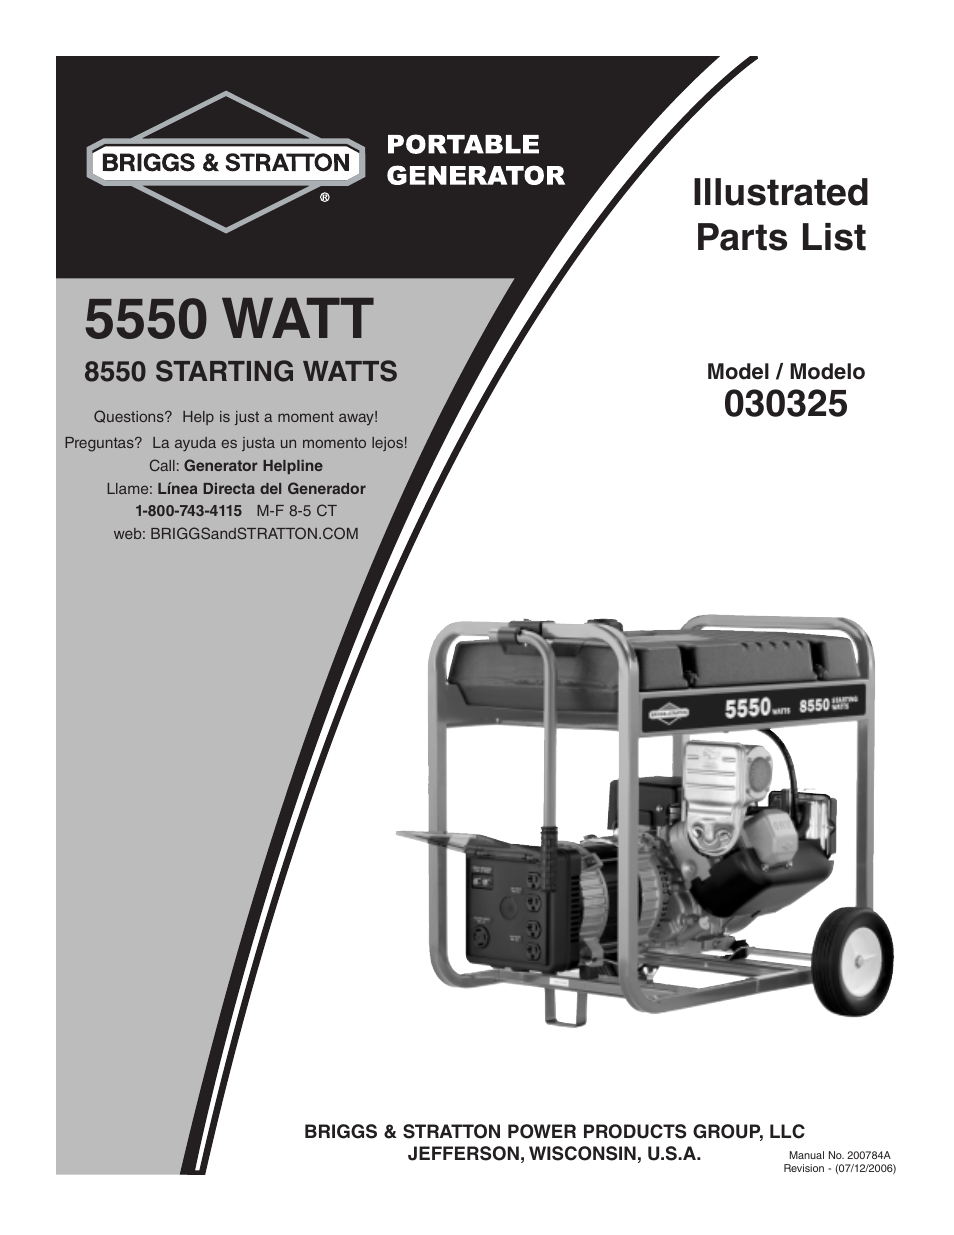 briggs stratton 030325 user manual 5 pages original mode rh manualsdir com briggs and stratton 5500 watt portable generator manual briggs and stratton wheelhouse 5550 generator parts